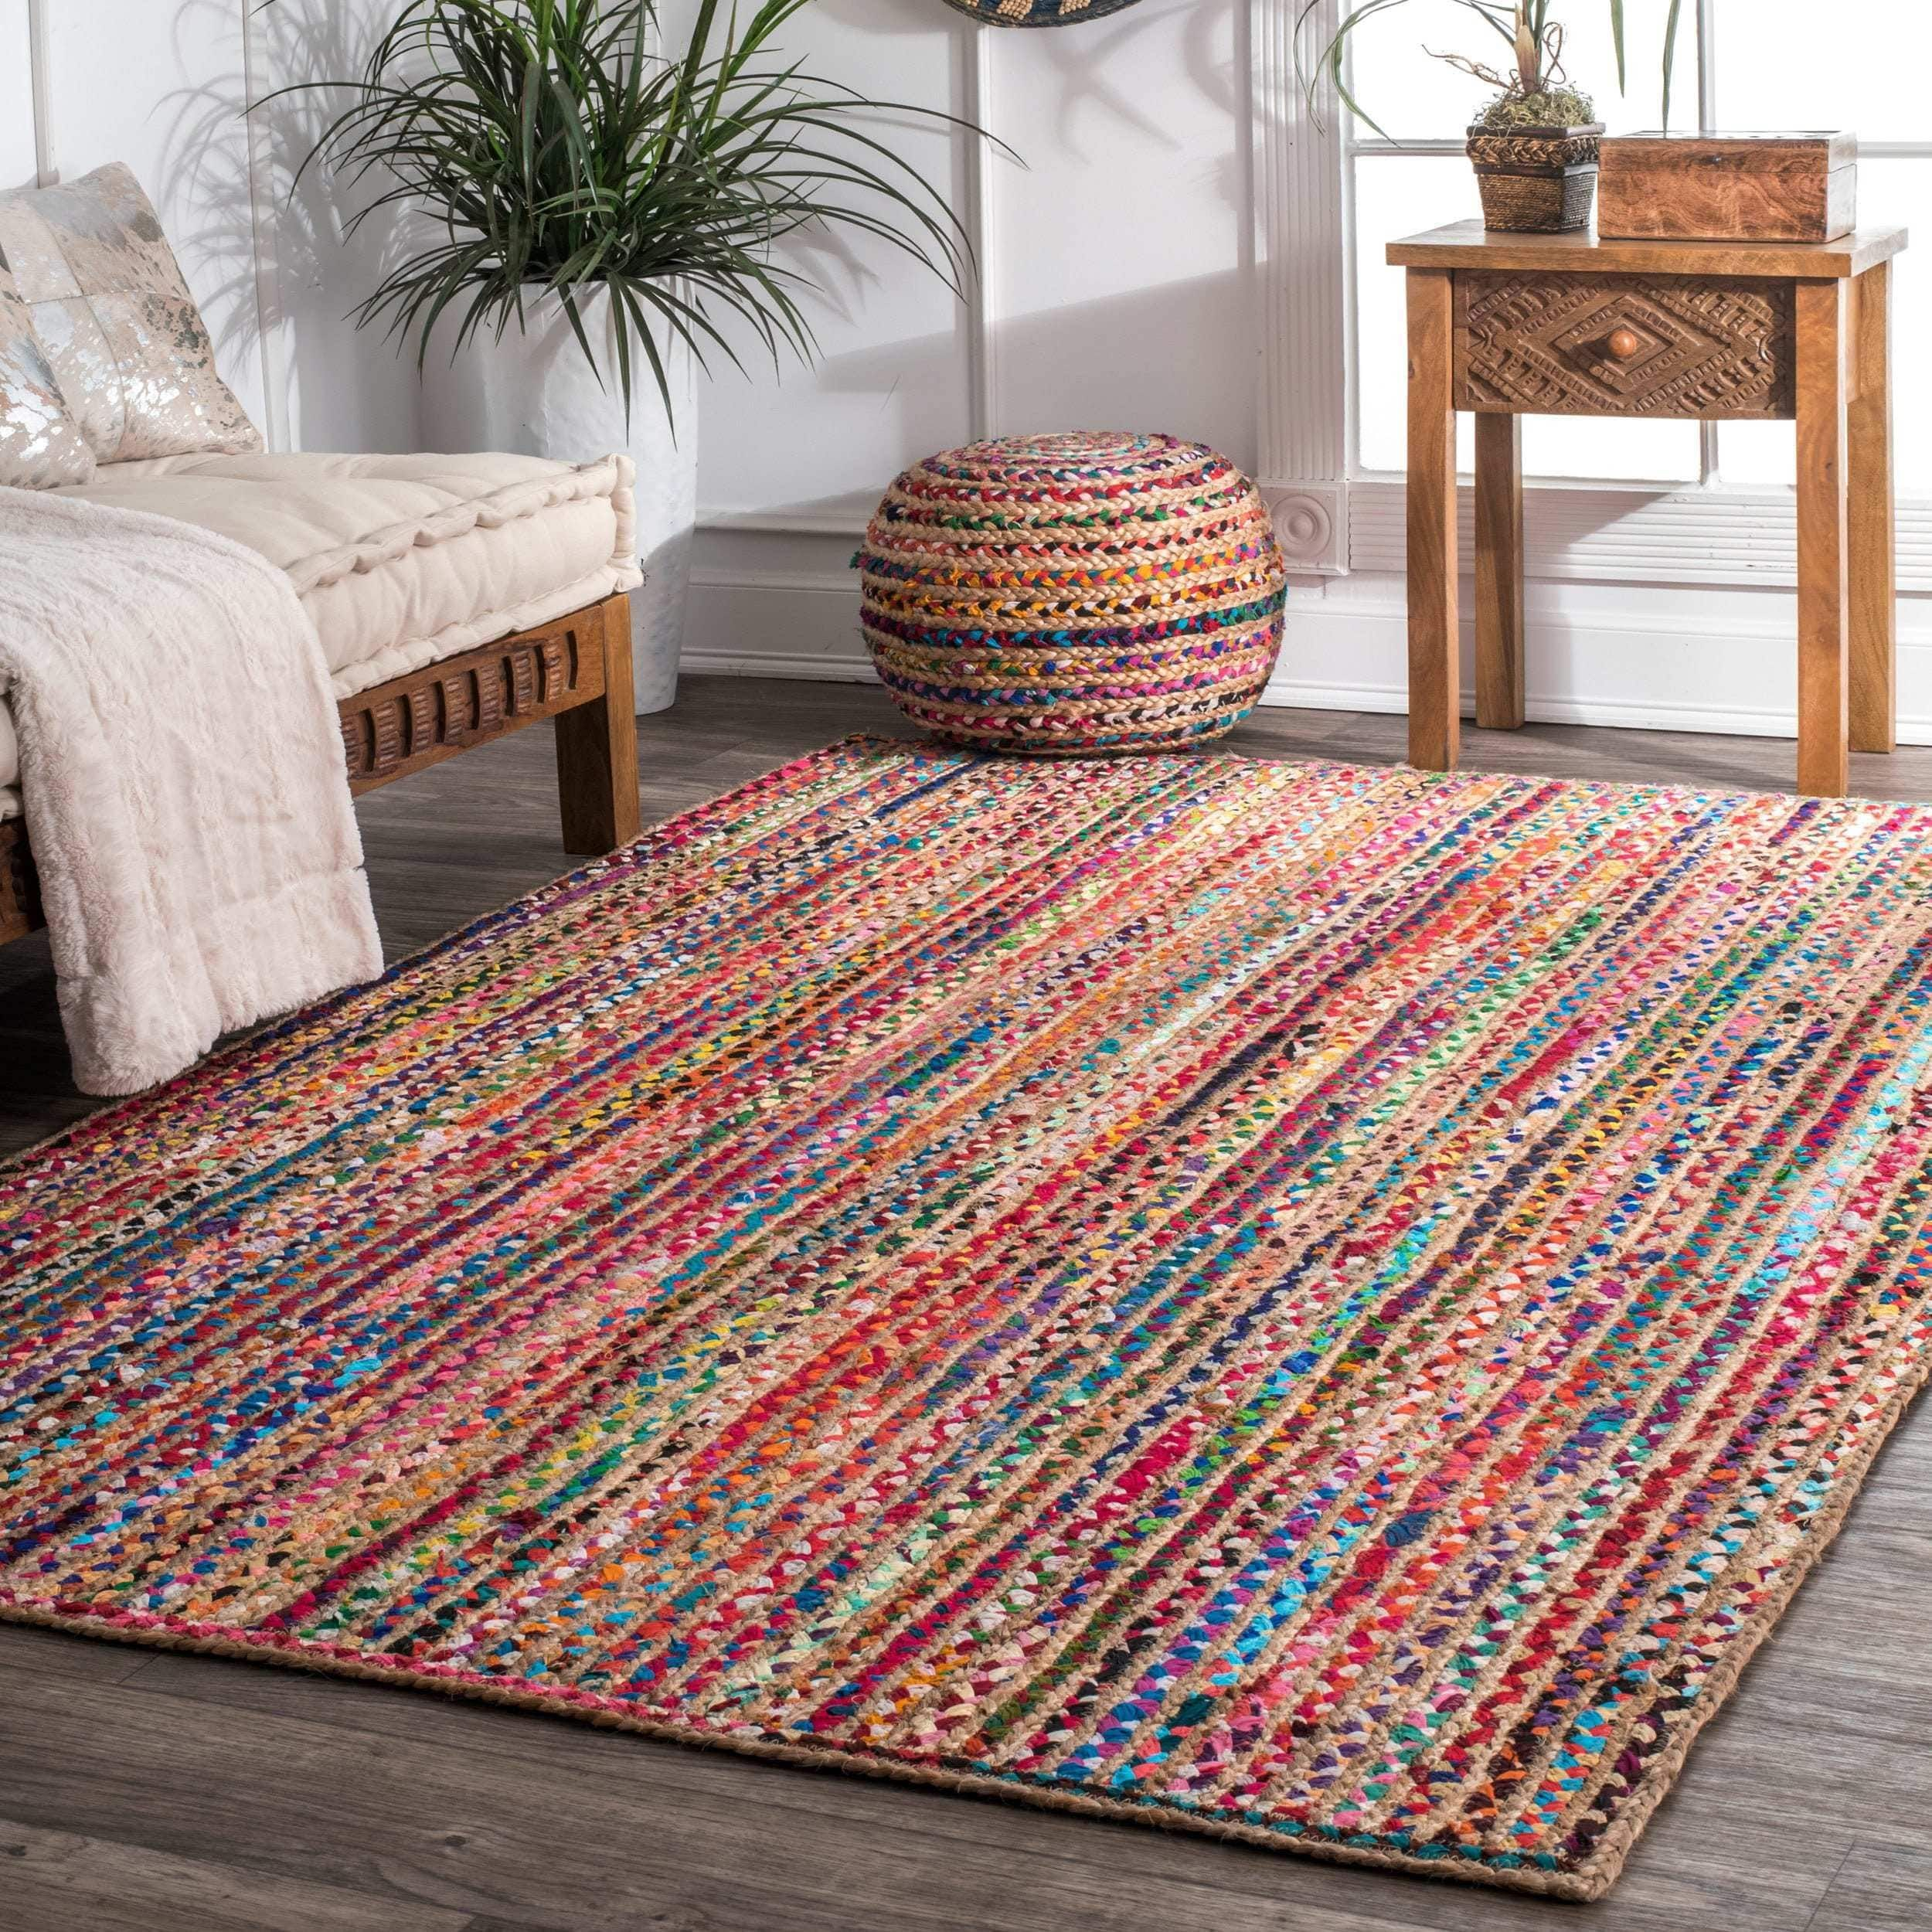 Nuloom Casual Handmade Braided Cotton Jute Area Rug 8 X 10